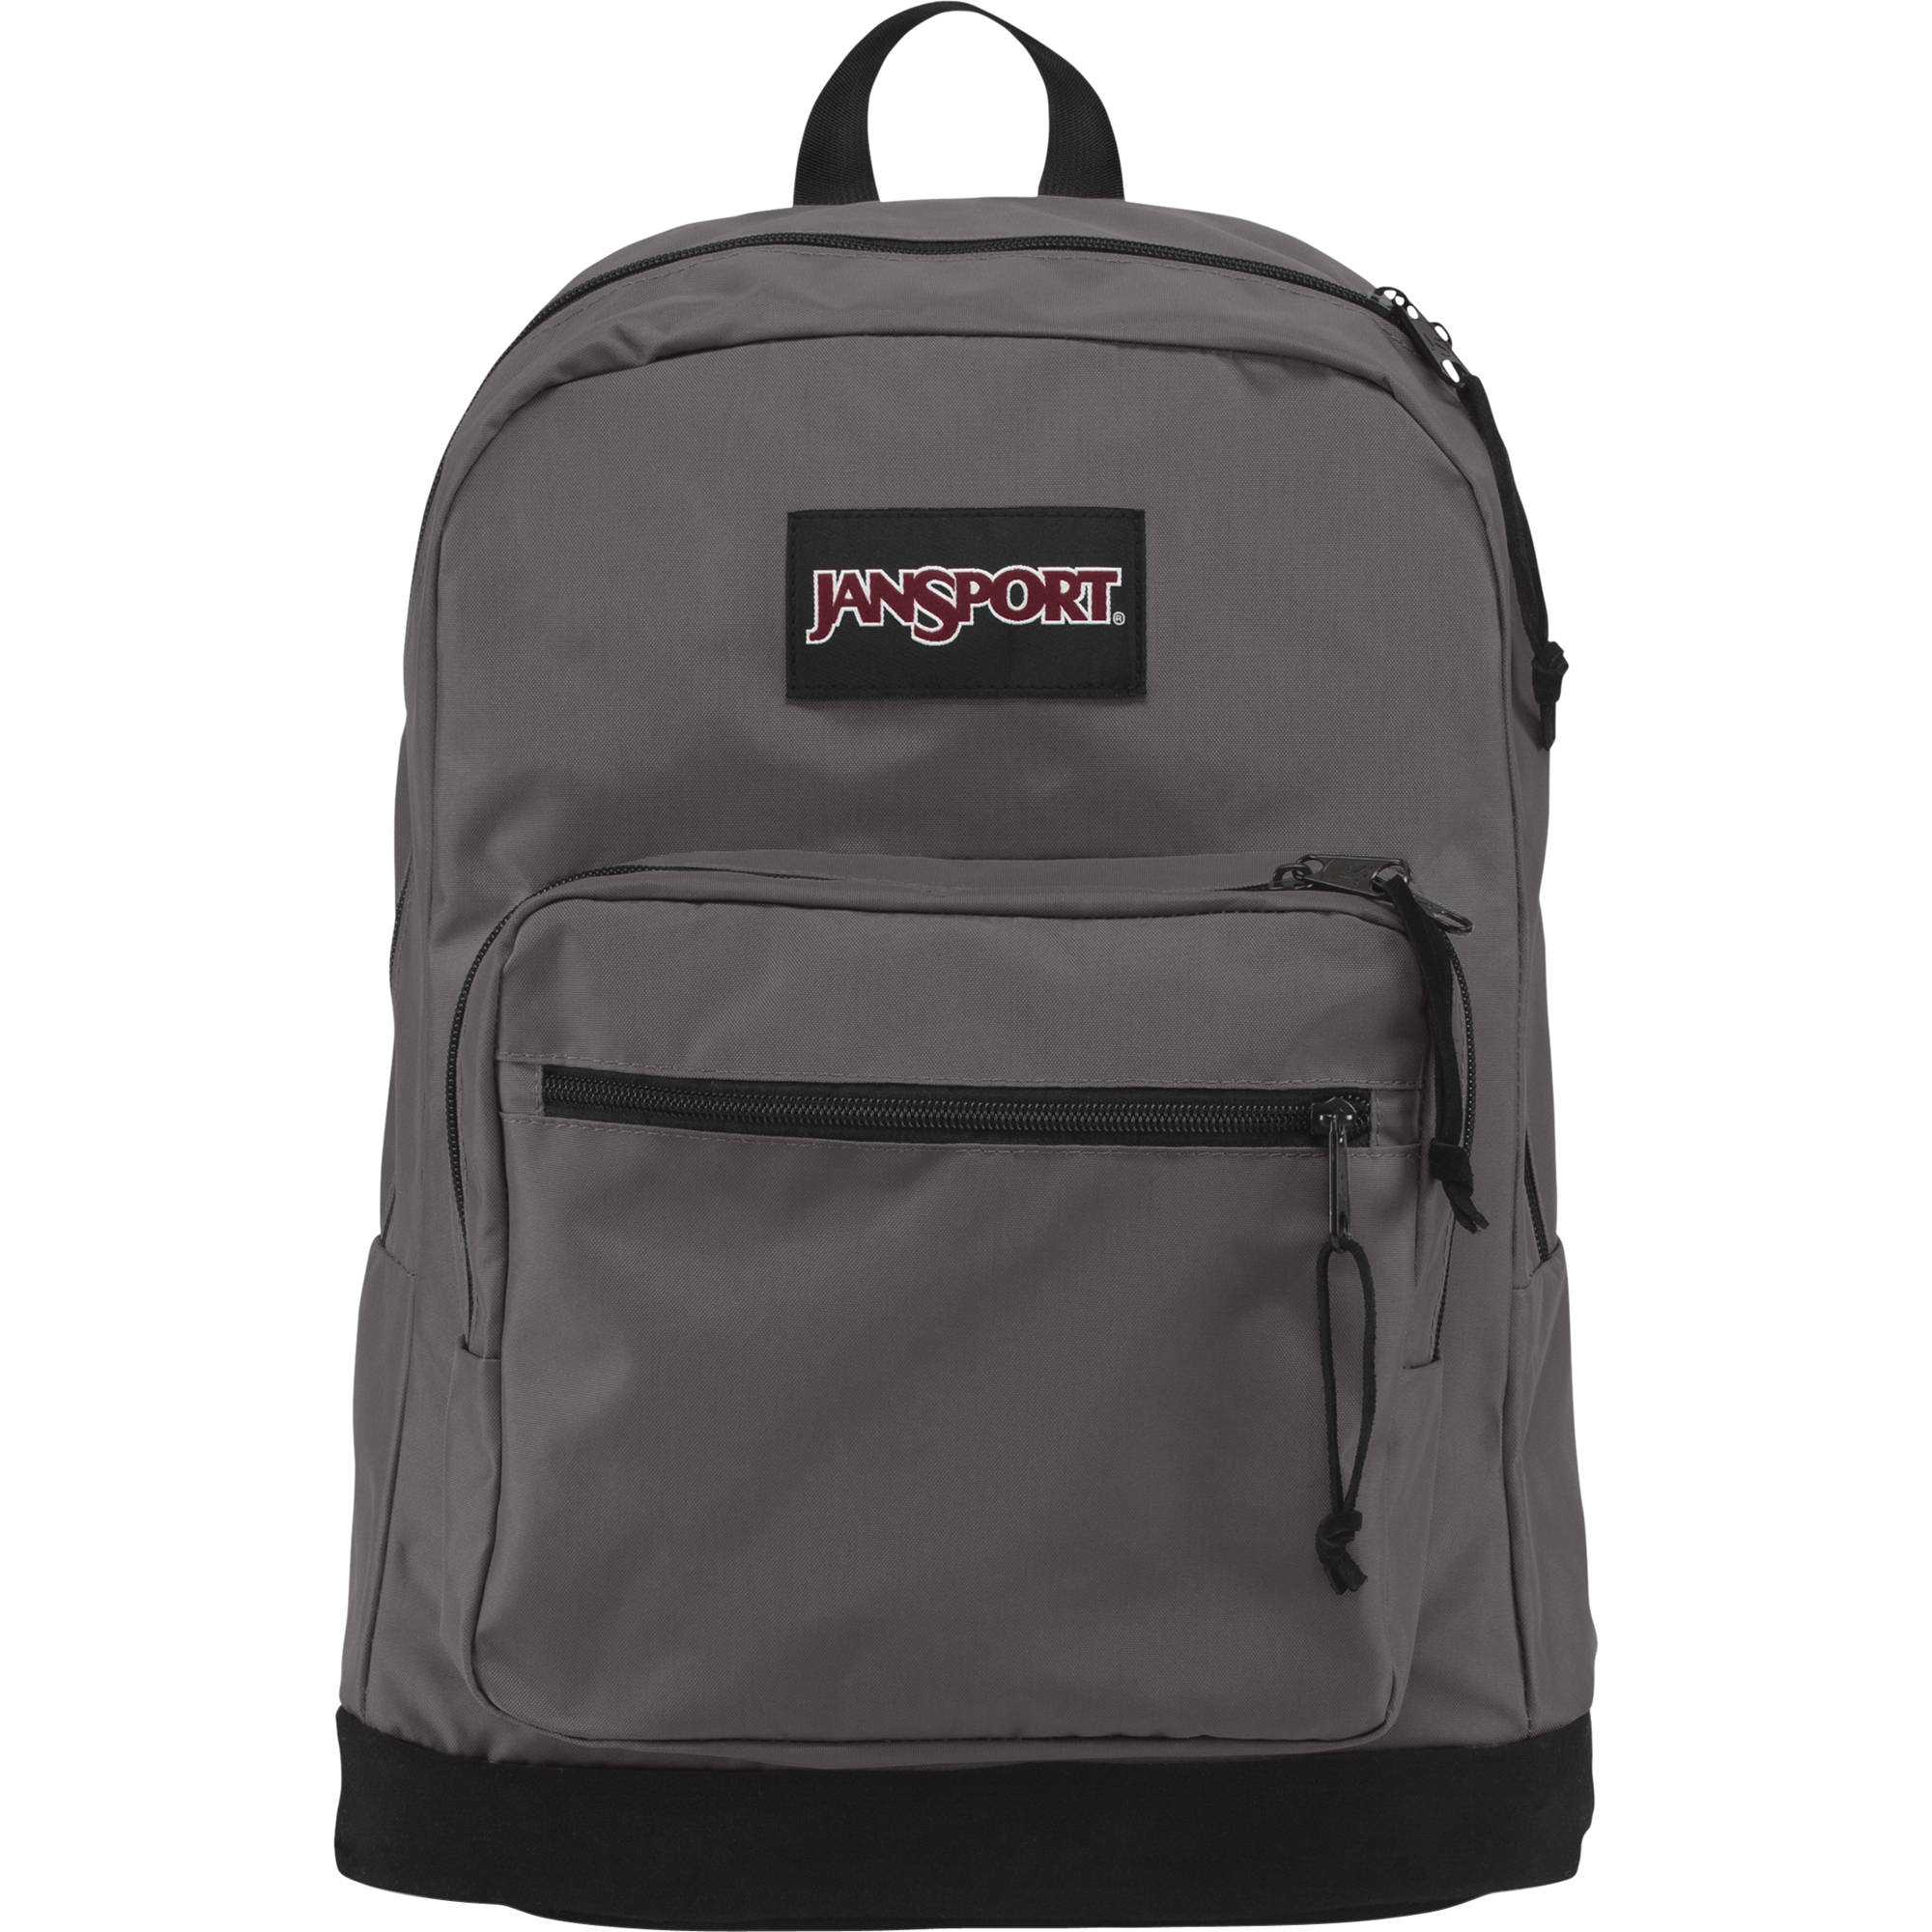 JanSport Right Pack Digital Edition 31L Backpack (Shady Grey) 4149f23328130